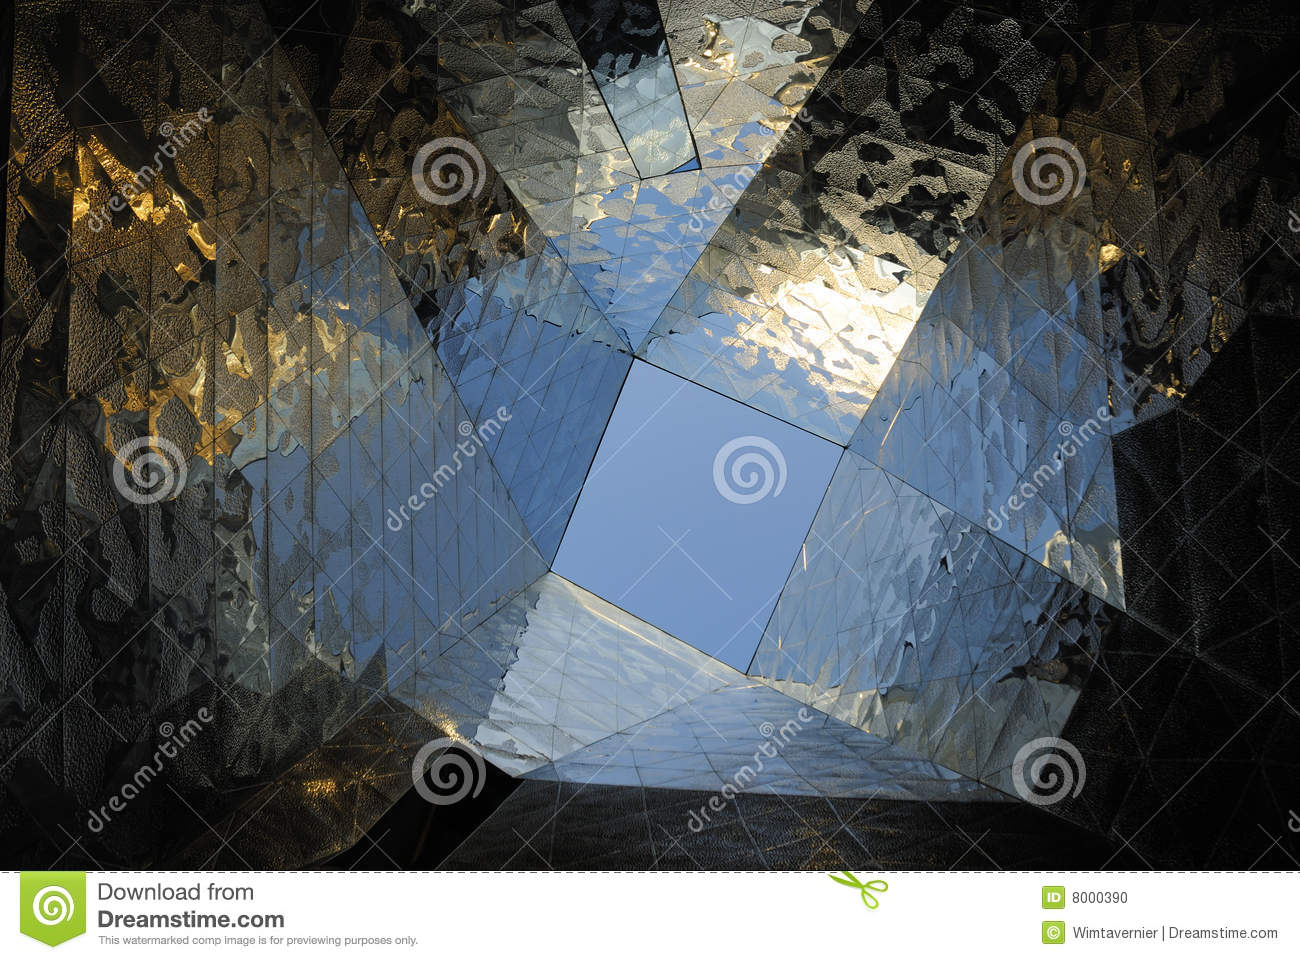 Abstract Architectural details